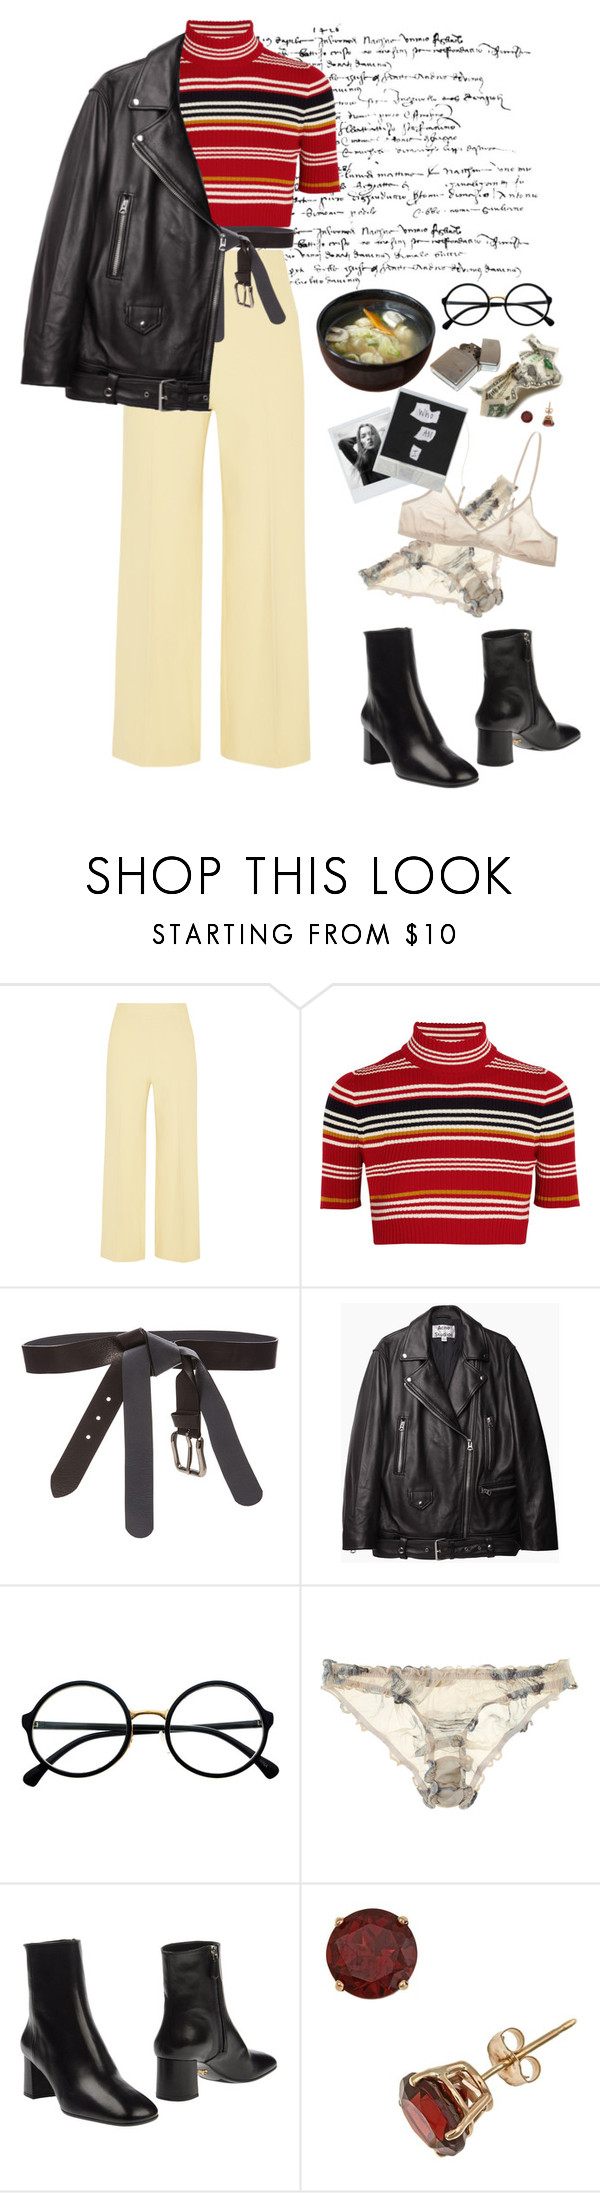 """""""tired"""" by fabdrabmag ❤ liked on Polyvore featuring The Row, Alessandra Rich, Maison Margiela, Acne Studios, Retrò, Beautiful Bottoms and Prada"""